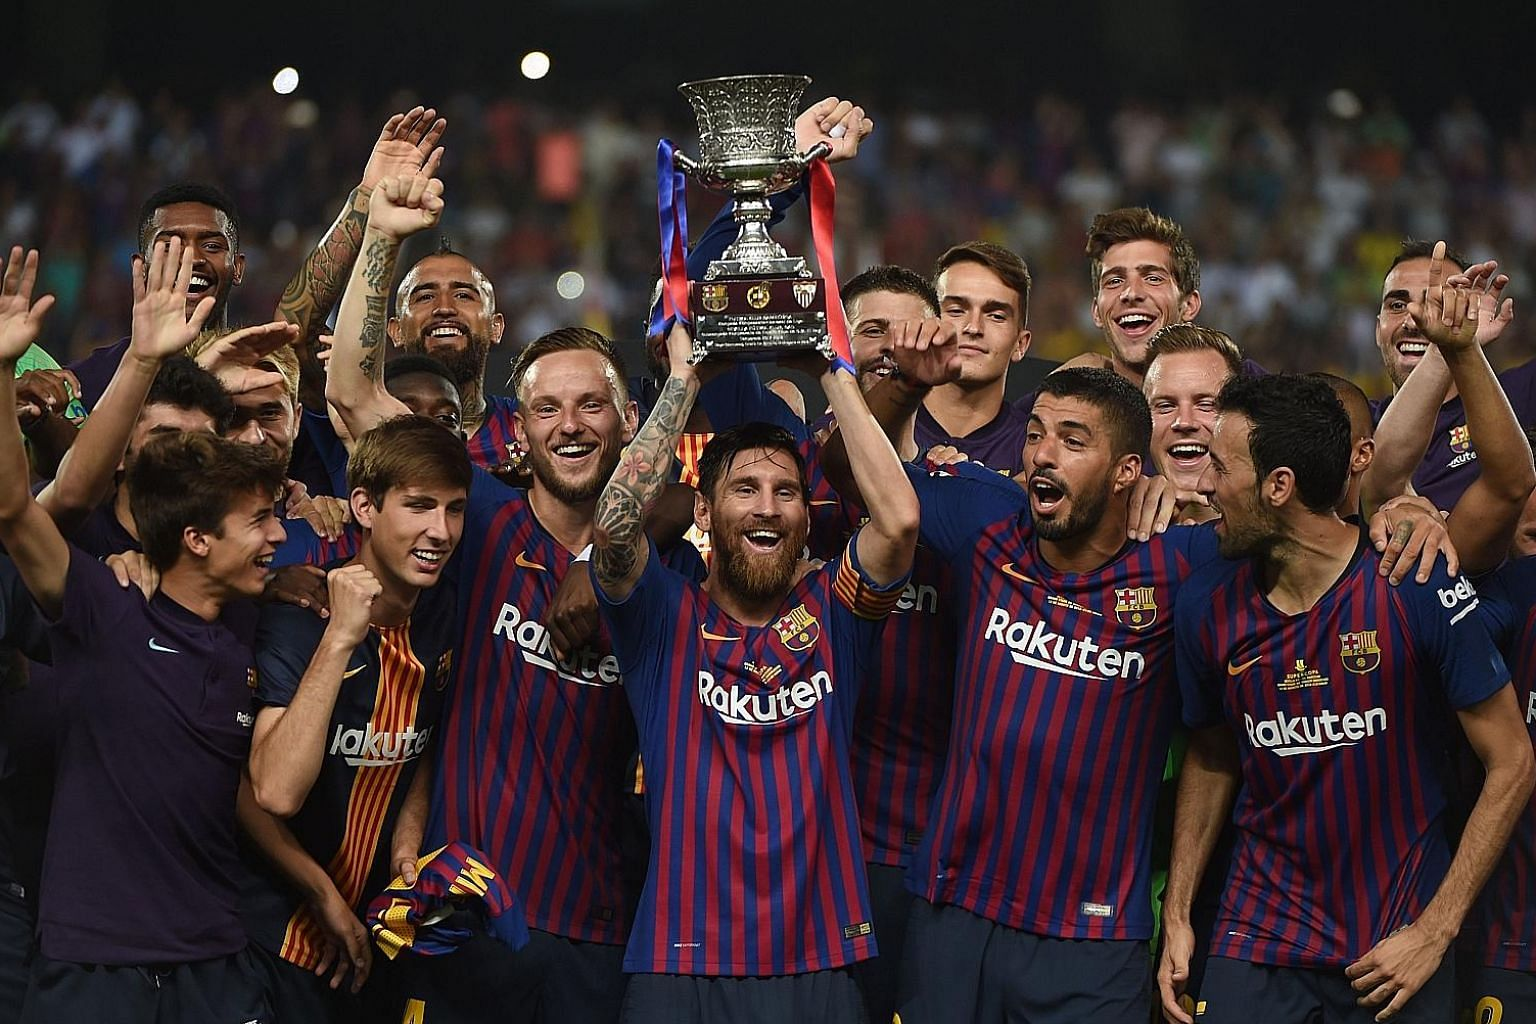 Barcelona captain Lionel Messi lifting the Spanish Super Cup after they came from behind to beat Sevilla 2-1 at the Ibn Batouta Stadium in the Moroccan city of Tangier.